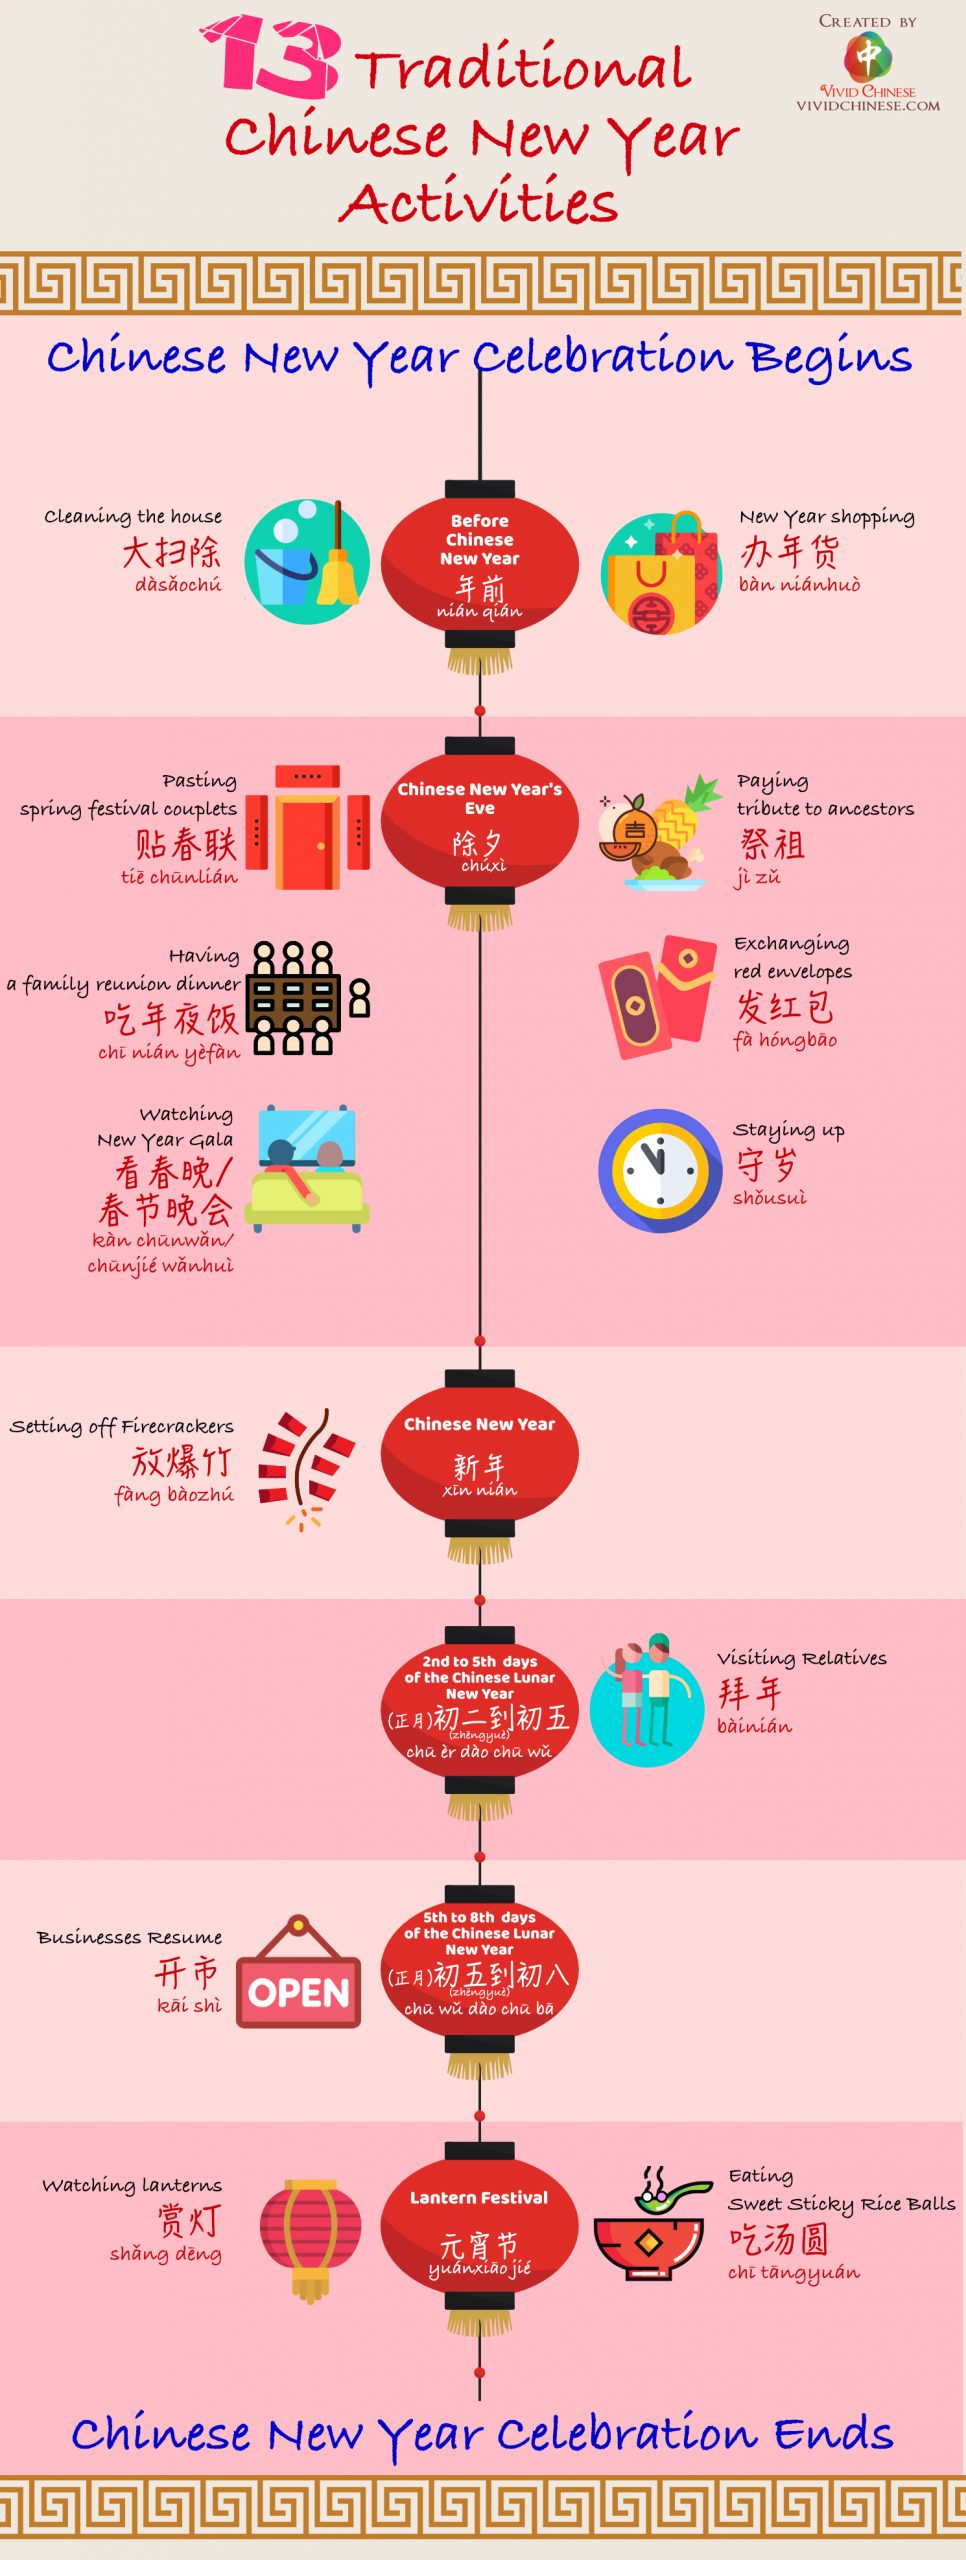 Chinese-new-year-activities